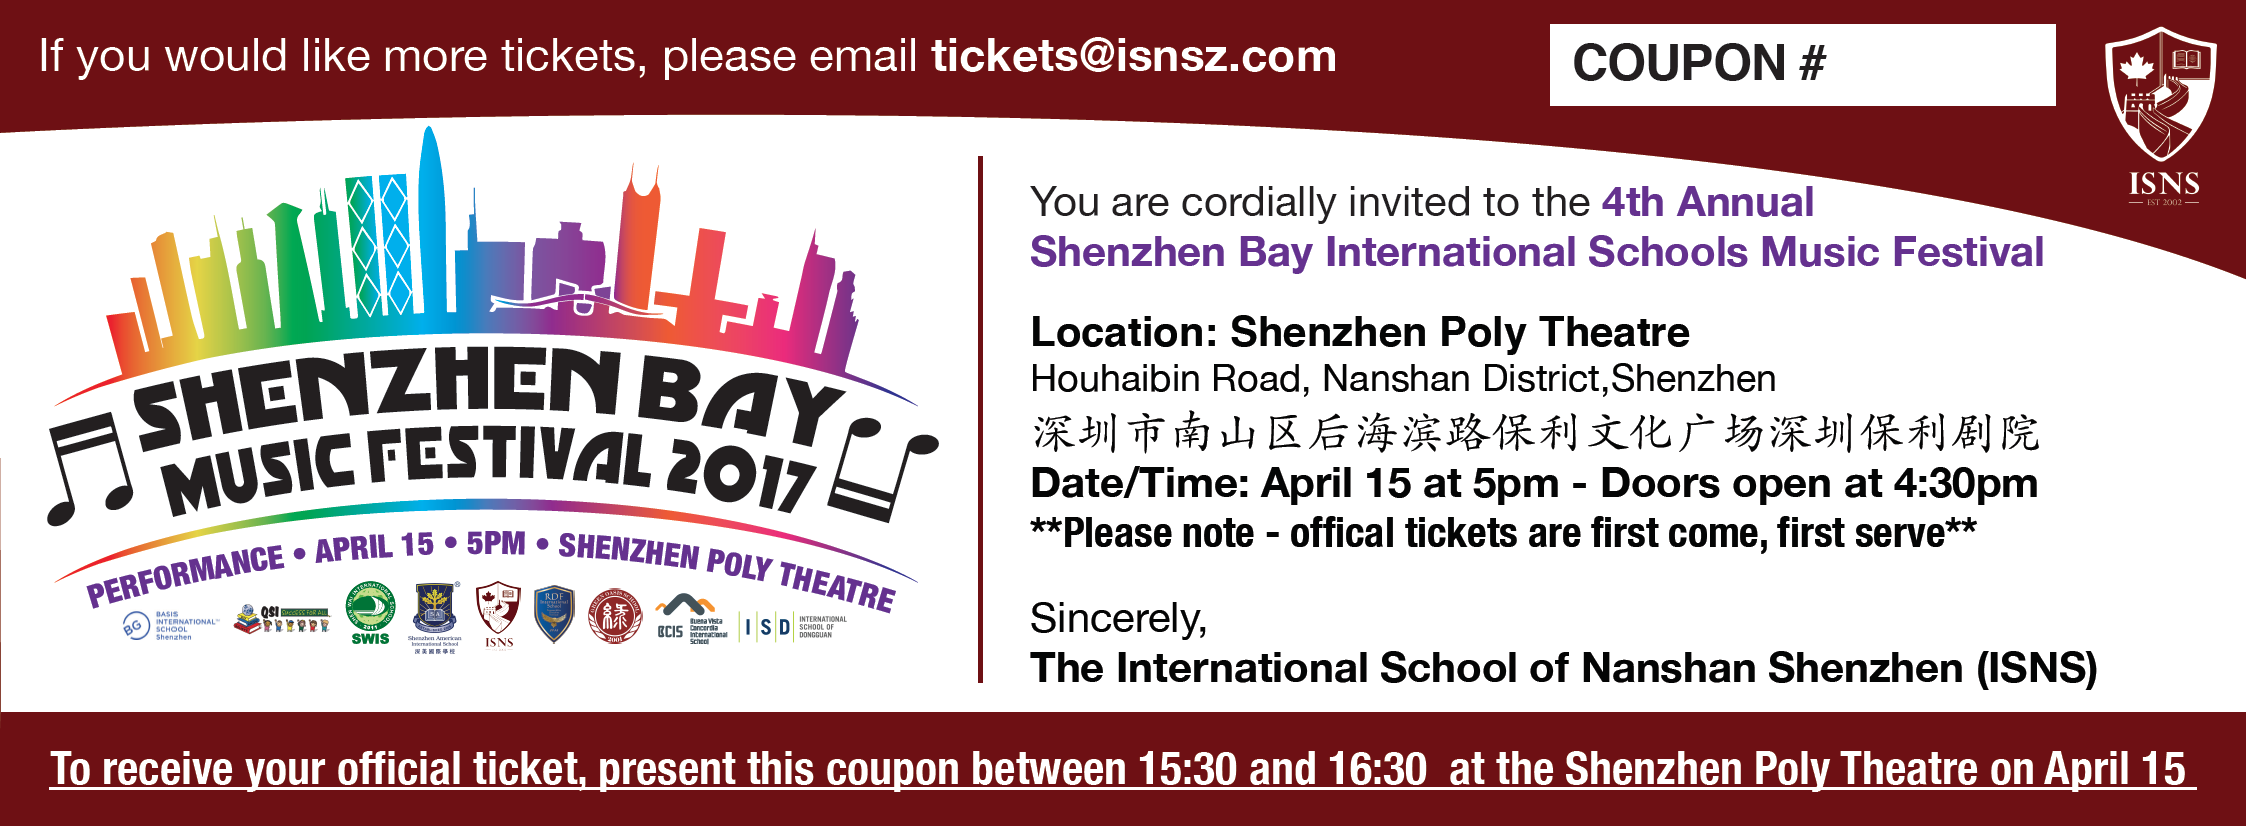 Shenzhen Bay International Schools Music ticket. 2017.